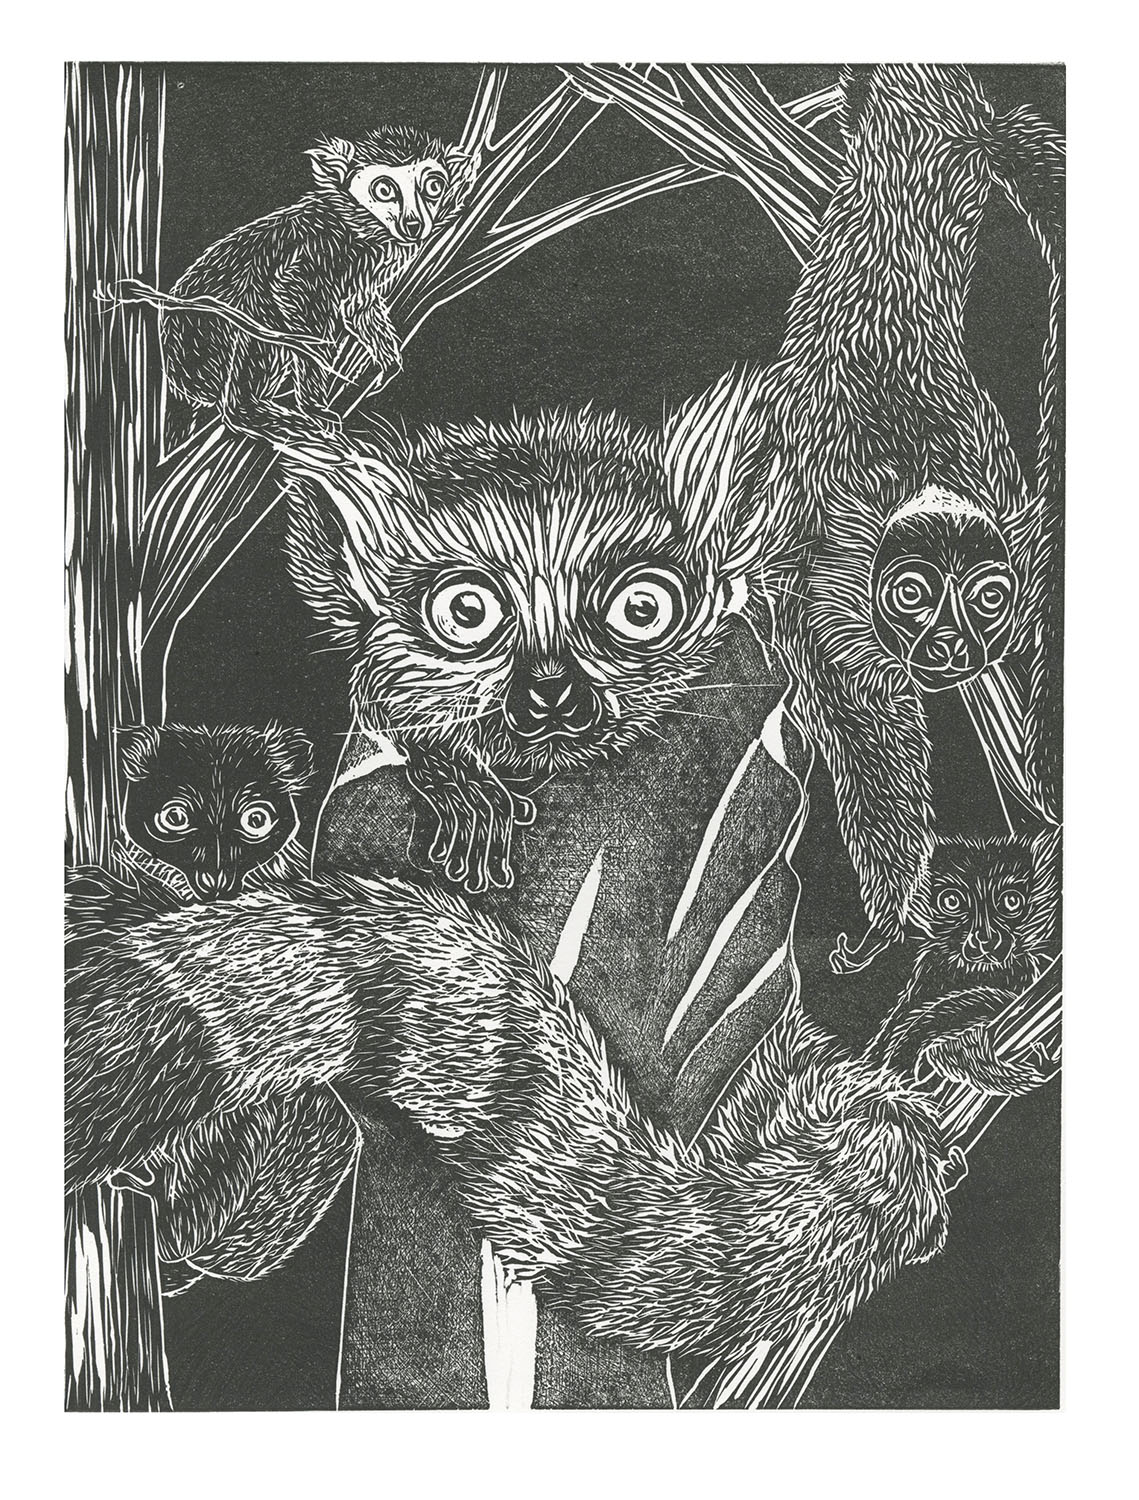 Ghosts  by Yeisy Rodriguez is a linocut that features the five species of lemurs most commonly sold as pets. Ninety-one percent of 103 lemur species face extinction as a result of pet trade and climate change.